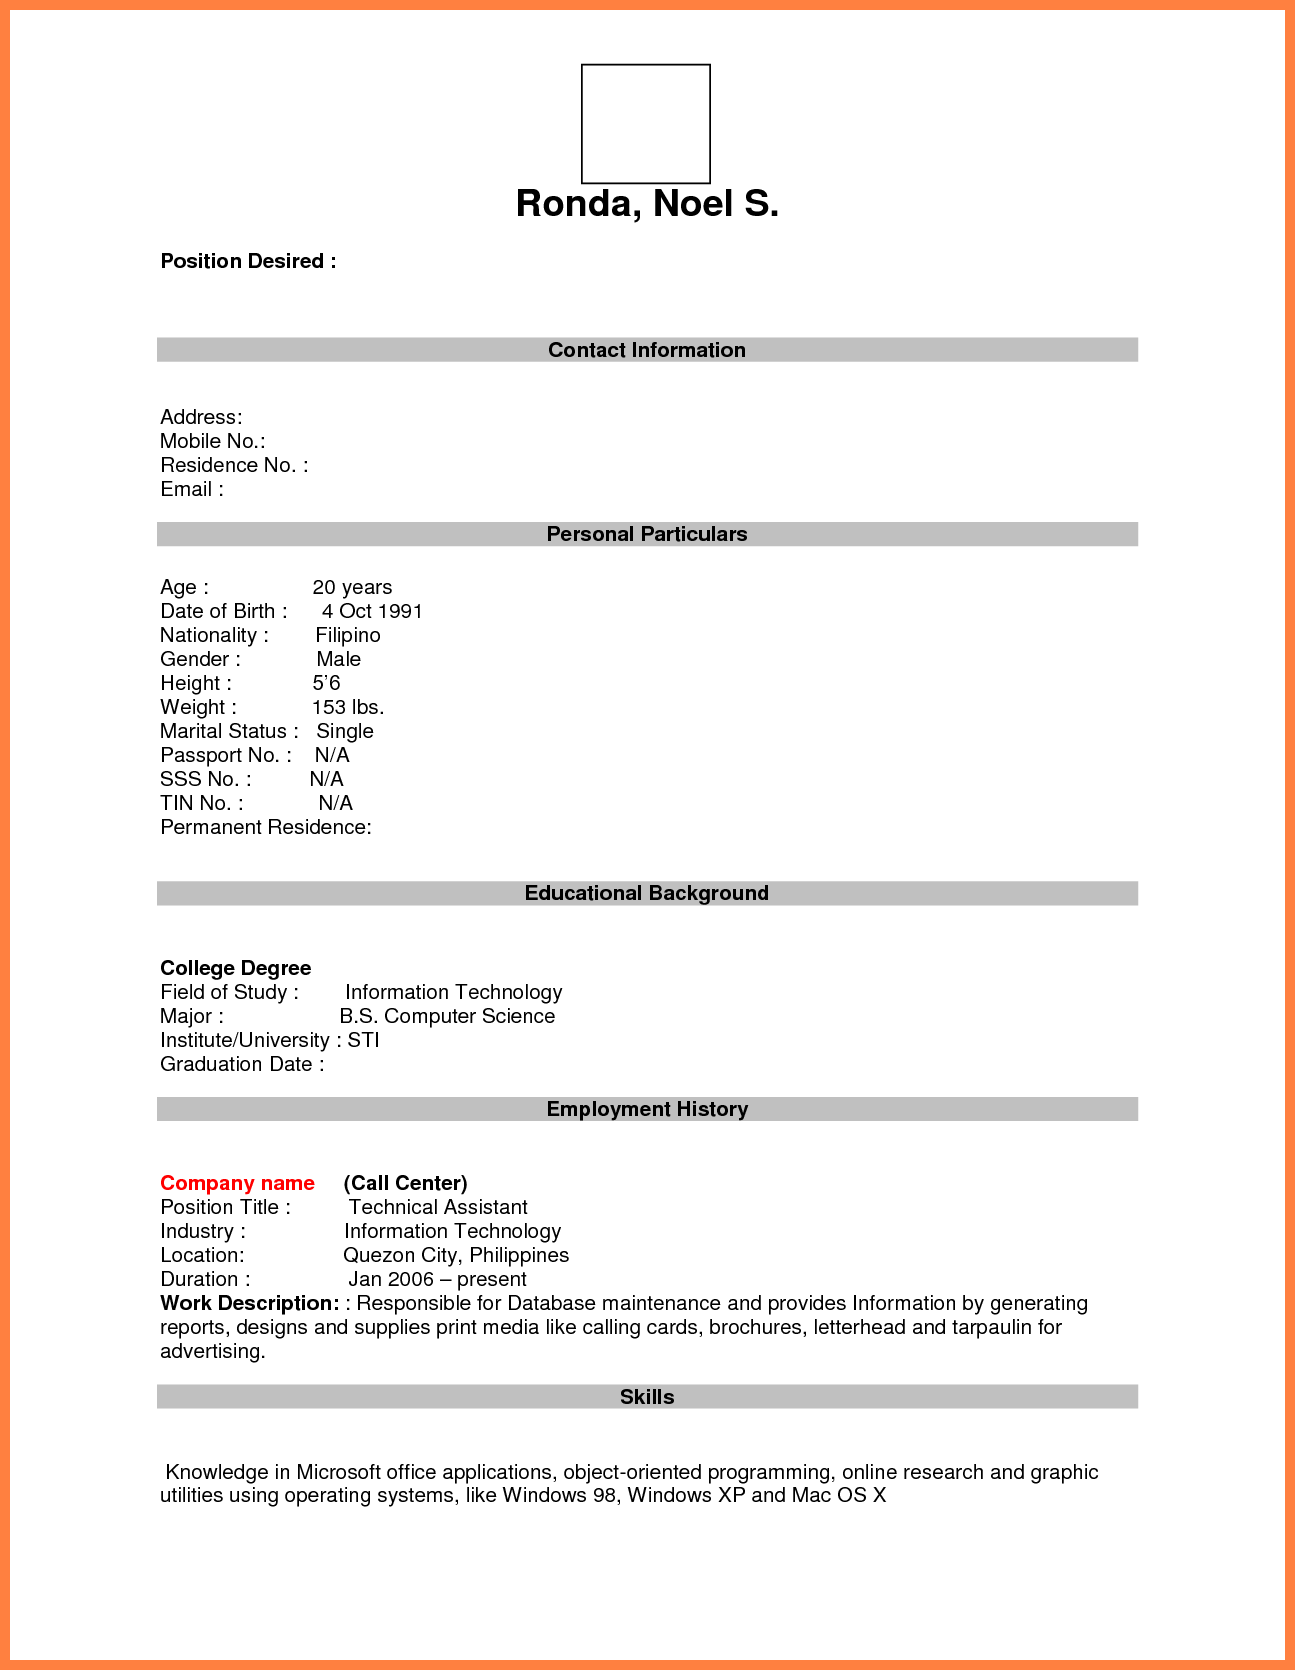 format for job application pdf basic appication letter blank resume form bussines proposal first time free - Empty Resume Format